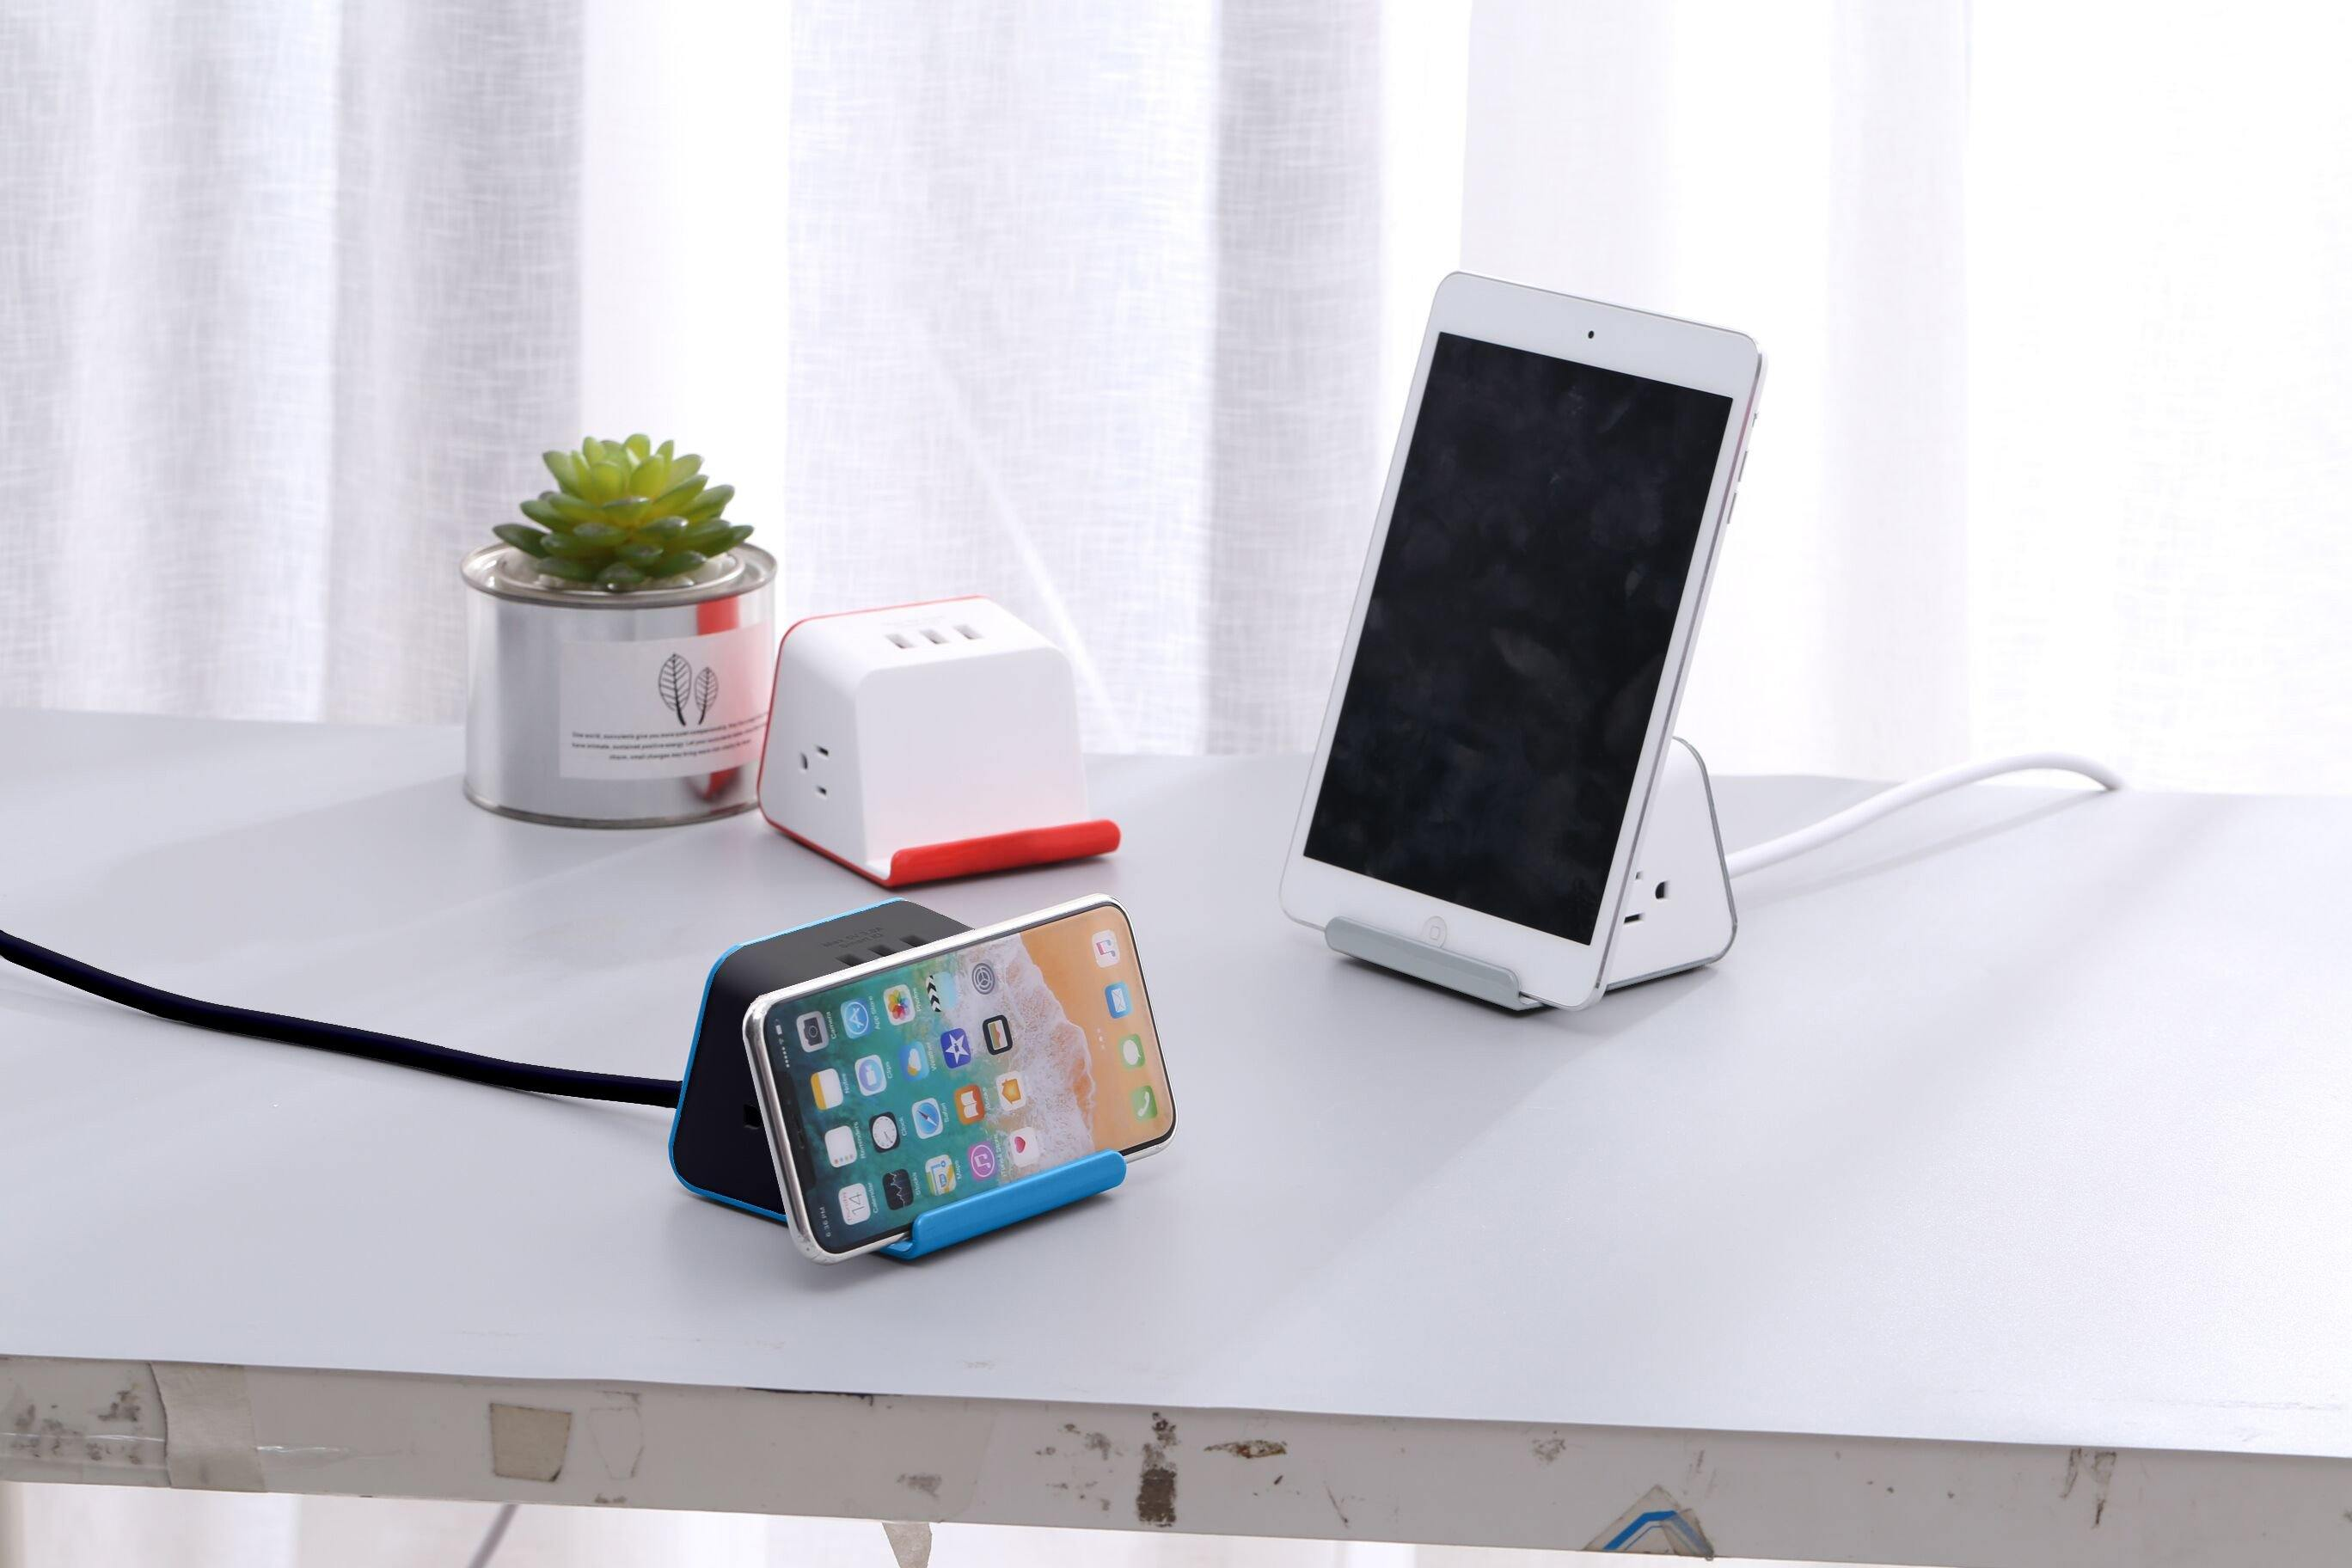 MyDesktop 29W Wireless Charging Stand with 3 USB Ports and 2 Power Outlets - Grey